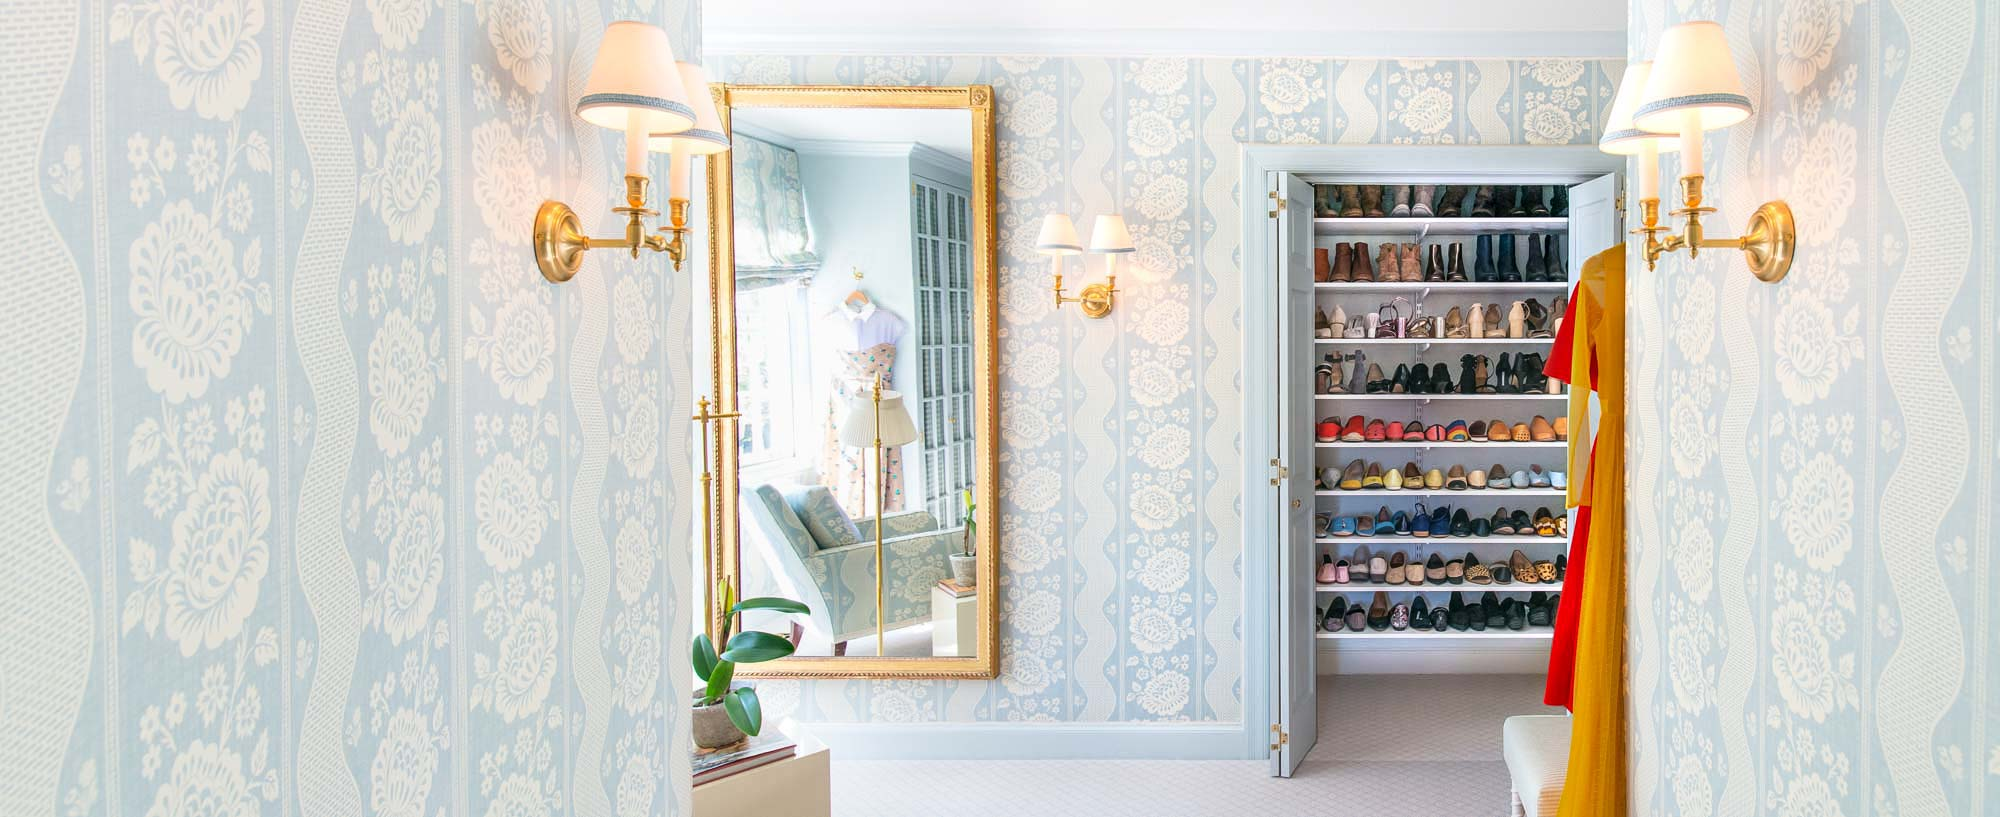 Best Closet Systems Organized Living Closet Systems And Storage For Home Organization